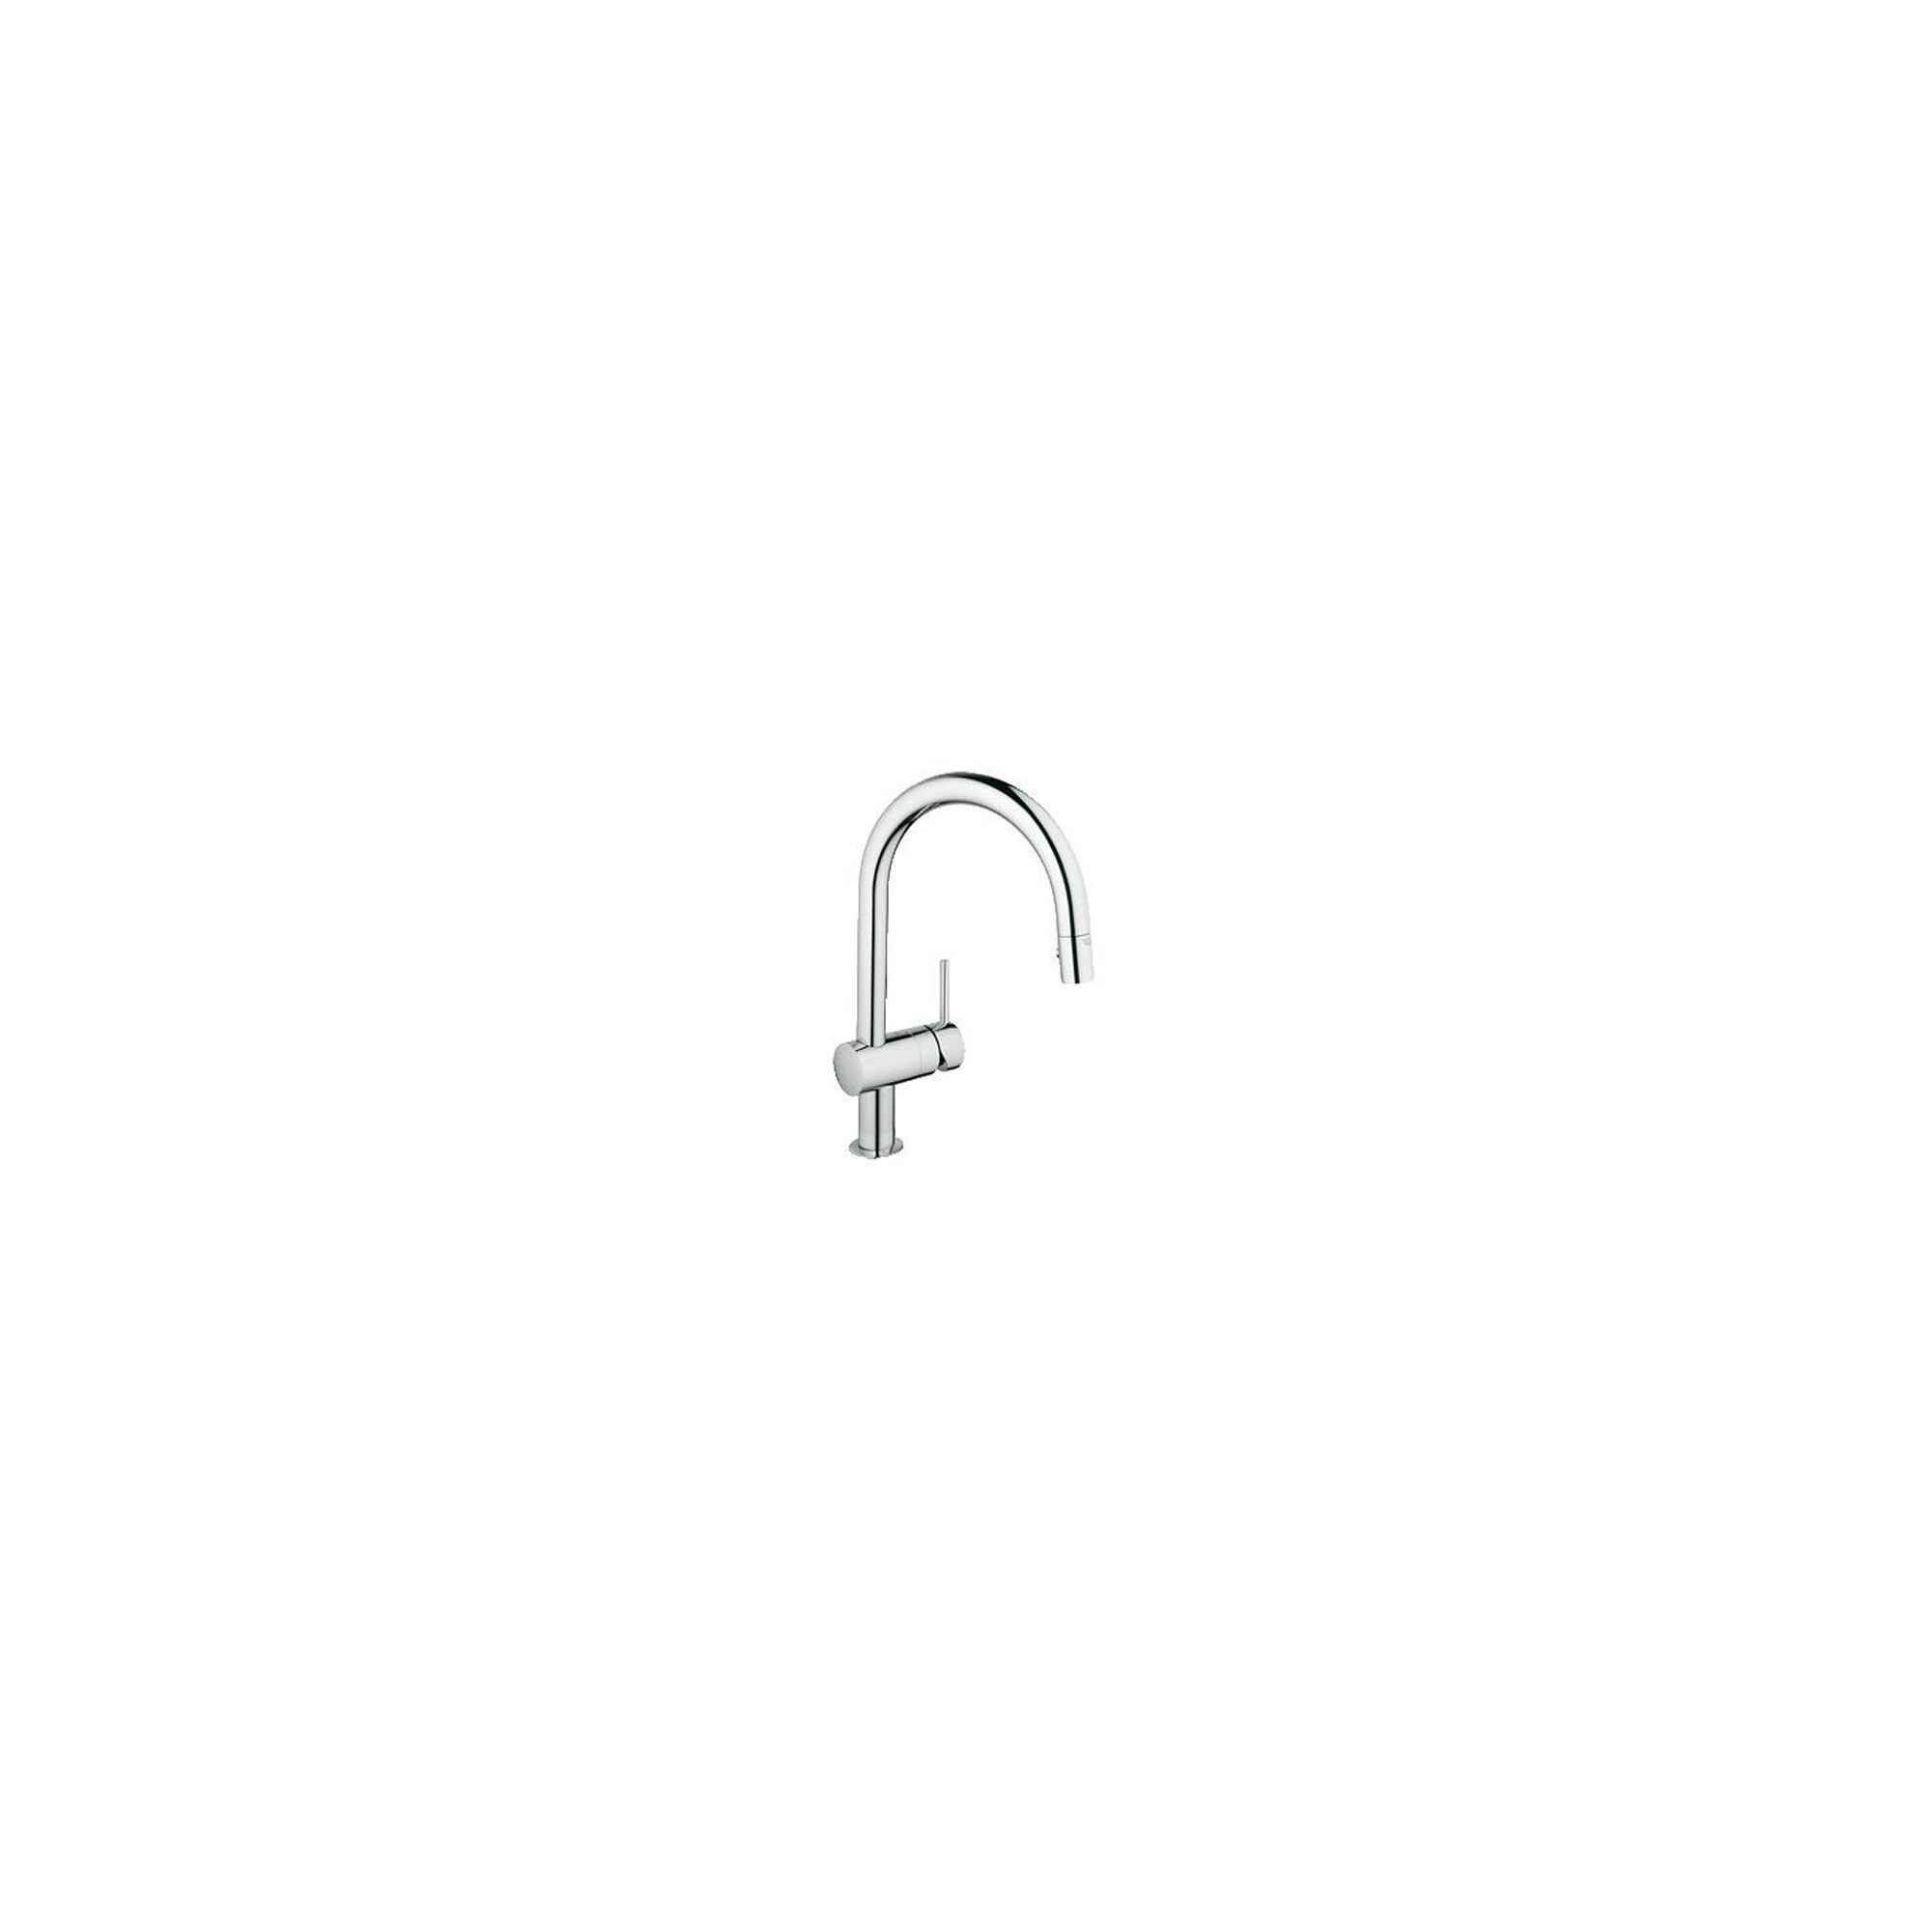 Grohe Minta Mono Sink Mixer Tap, C-Spout, Pull-Out Spray, Single Handle, Chrome at Tesco Direct